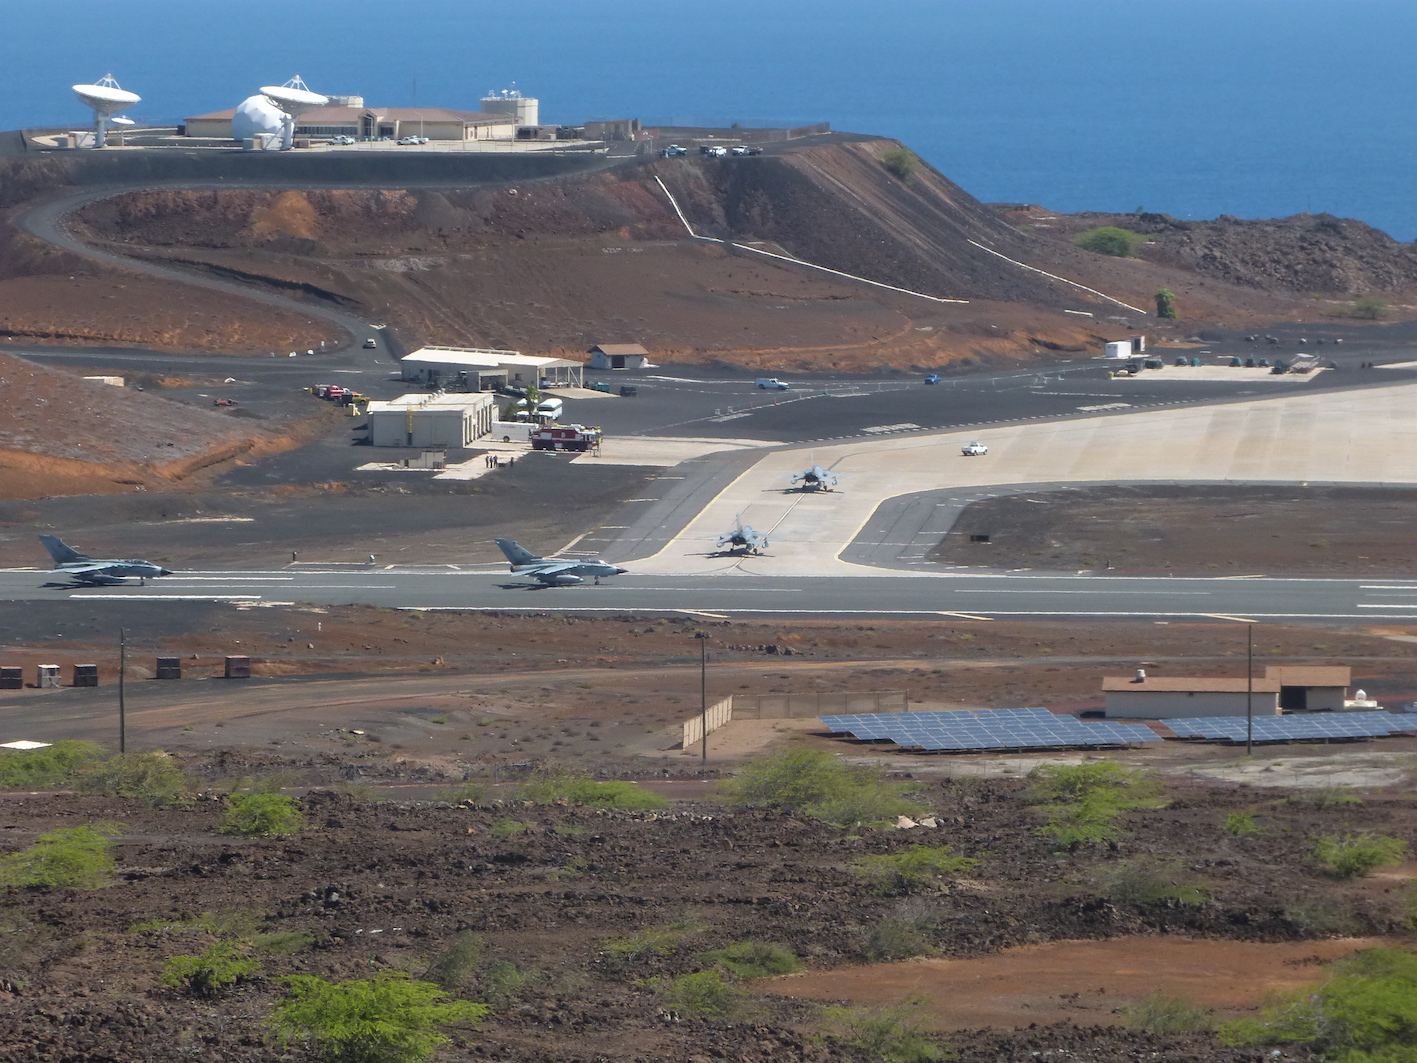 British Tornado jets on the tarmac at RAF Ascension Island (Picture Crown Copyright)